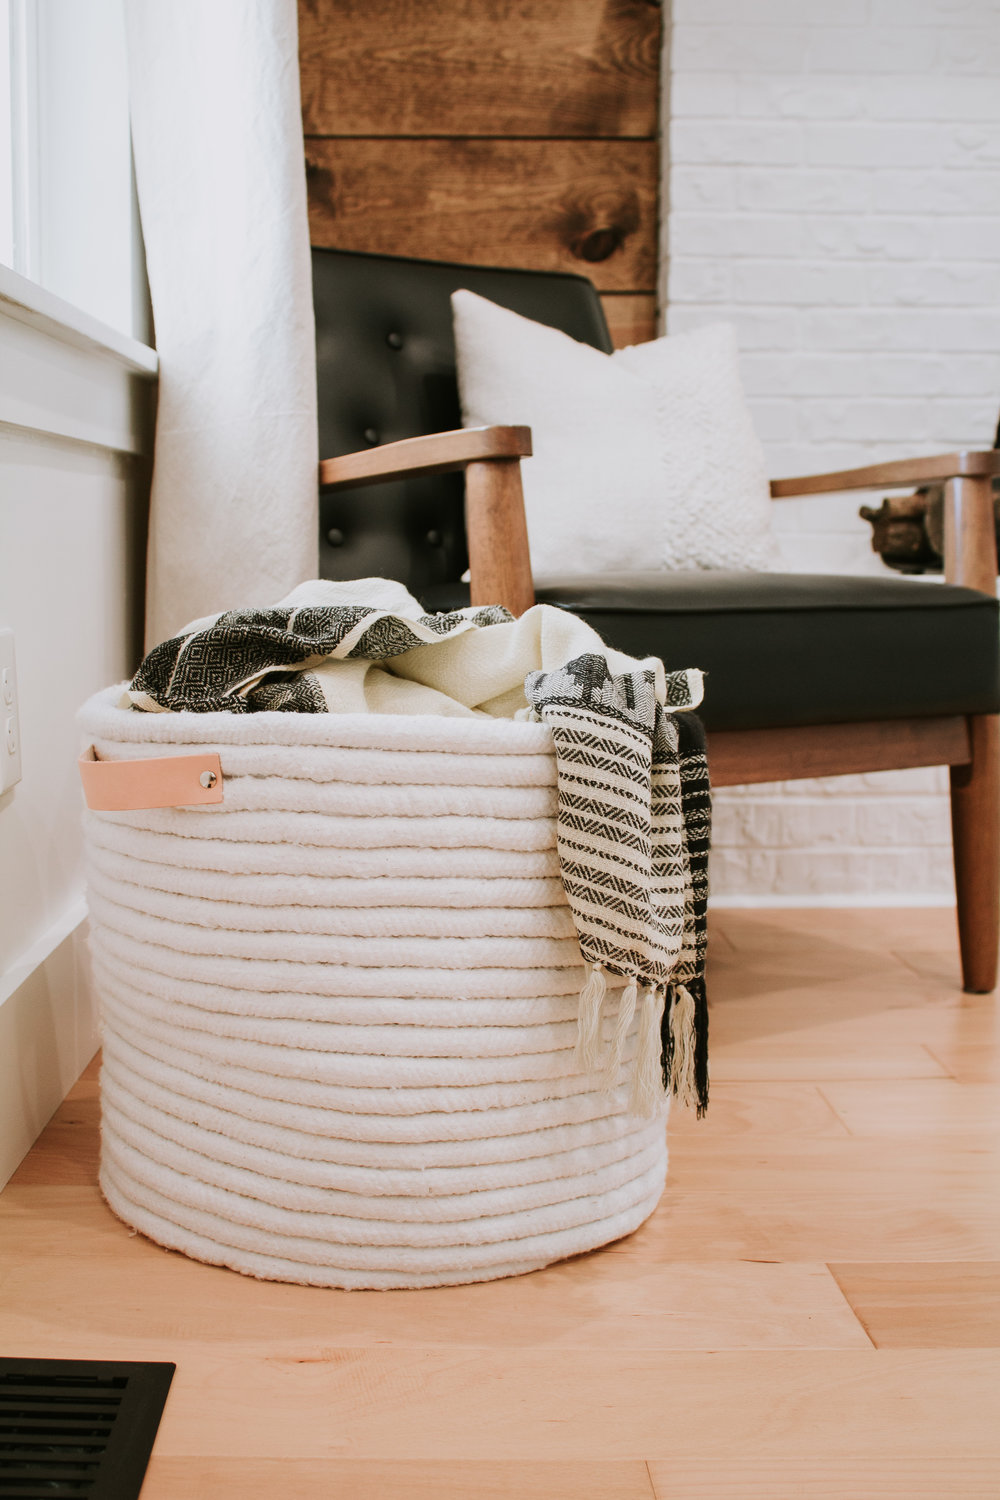 DIY No Sew Rope Basket - Easiest DIY project ever! - use as a throw blanket basket or storage tote - rope basket with leather handles